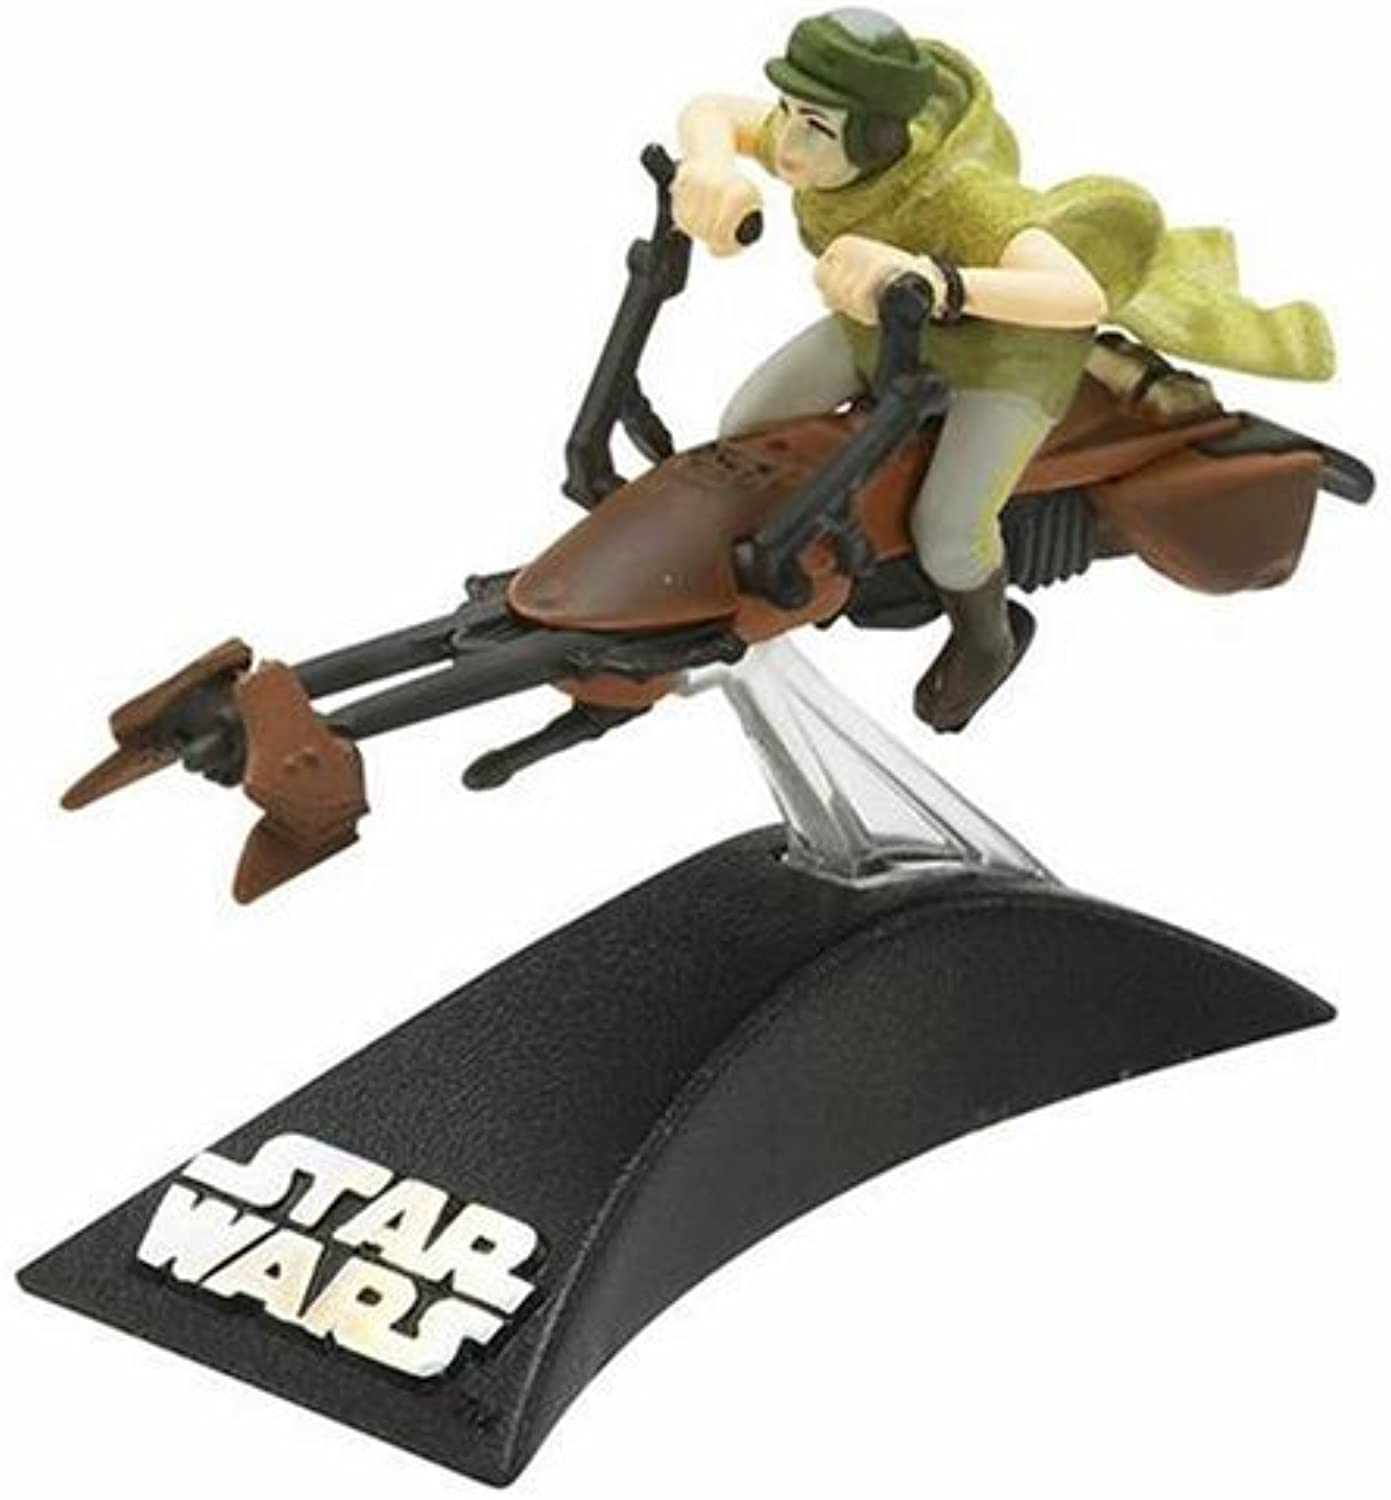 Titanium Series Star Wars 3 Inch Vehicle Leia's Speeder Bike